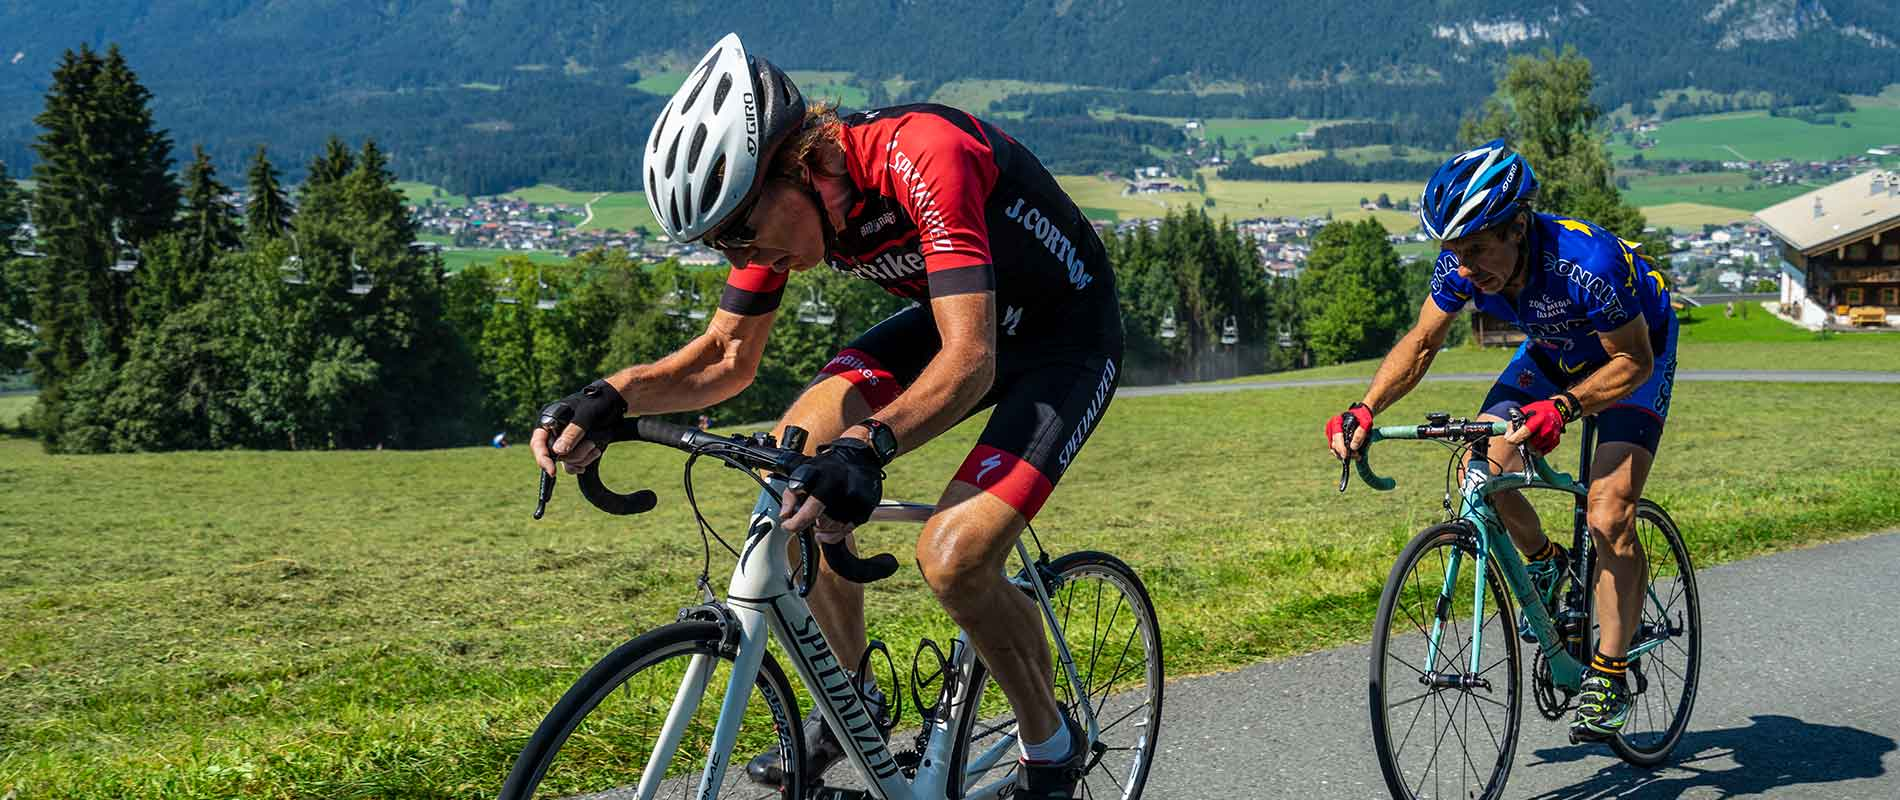 Ride Uphill at the Bergsprint